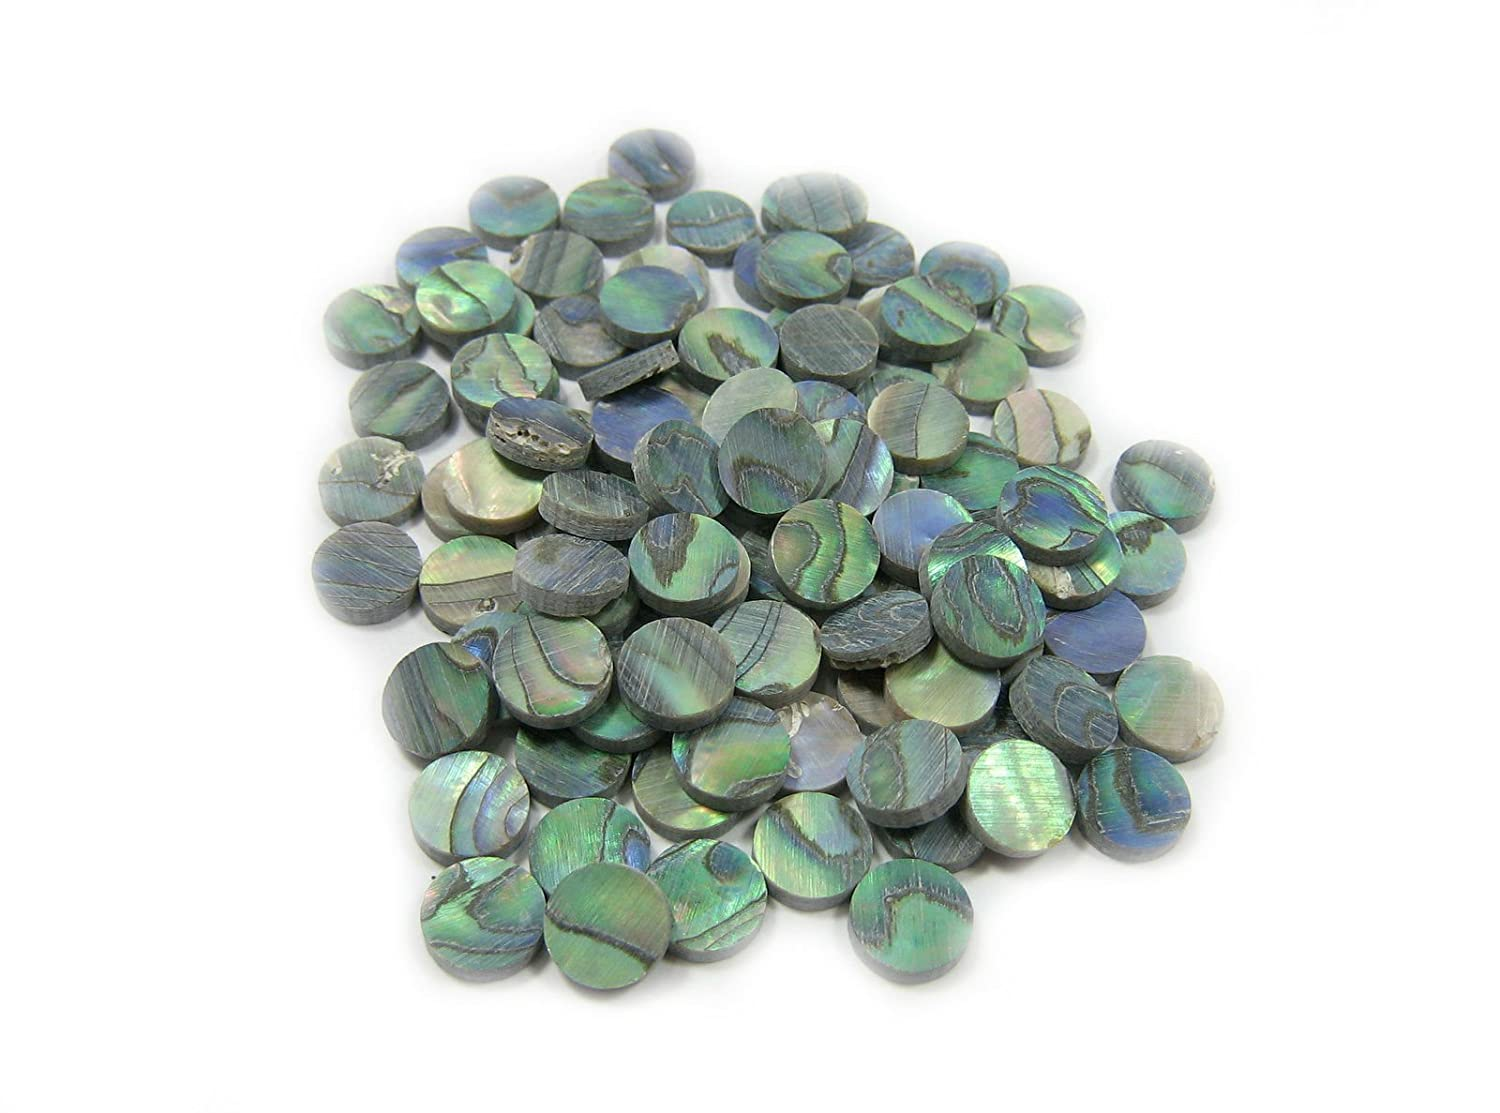 100 Pieces 5mm Round X 1.5mm Thickness Green Abalone Fretboard Position Mark Inlay Dots For Ukulele Guitar (5mm G) 711VY6EL9mL